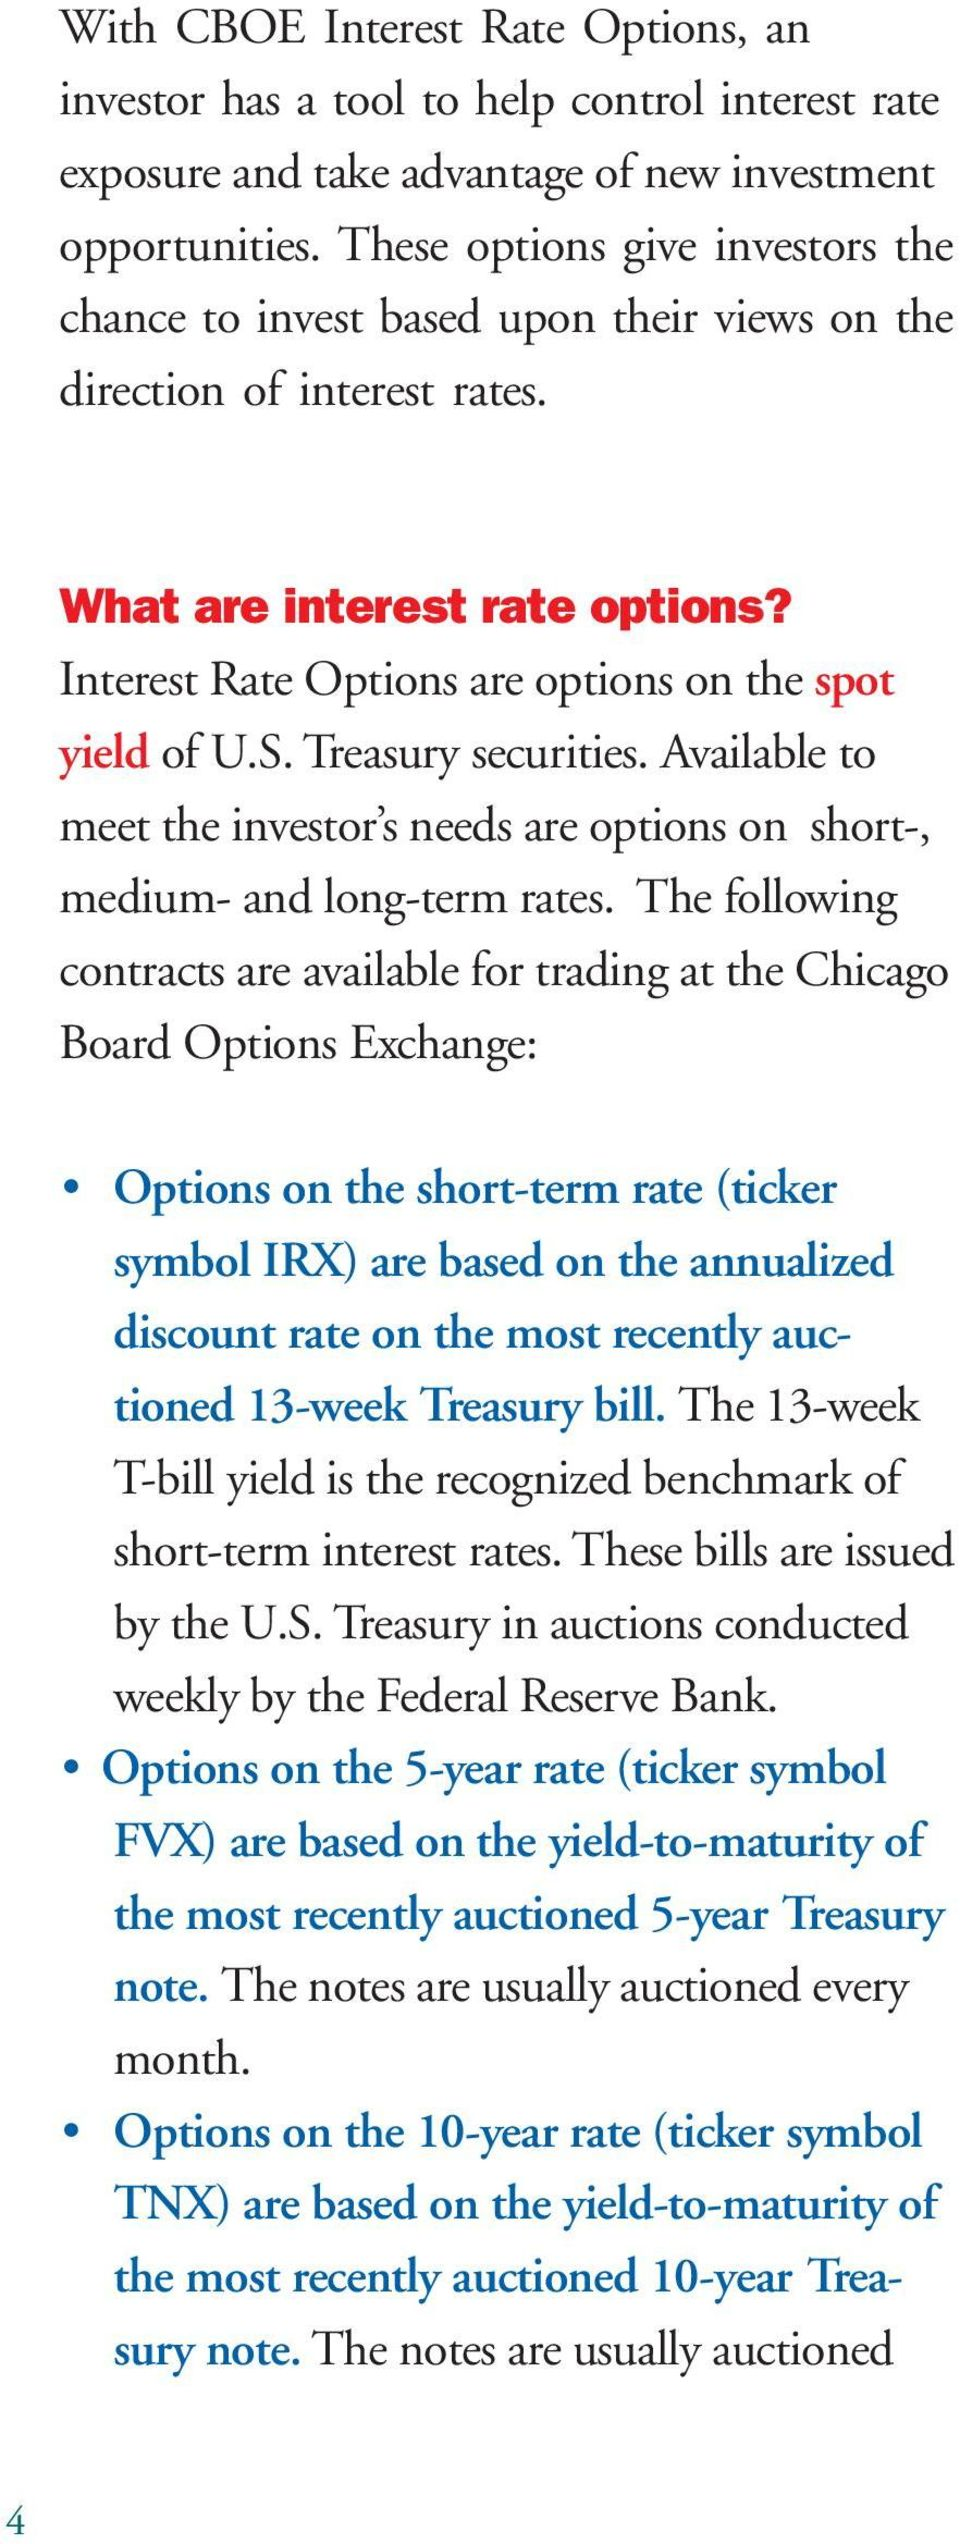 Treasury securities. Available to meet the investor s needs are options on short-, medium- and long-term rates.